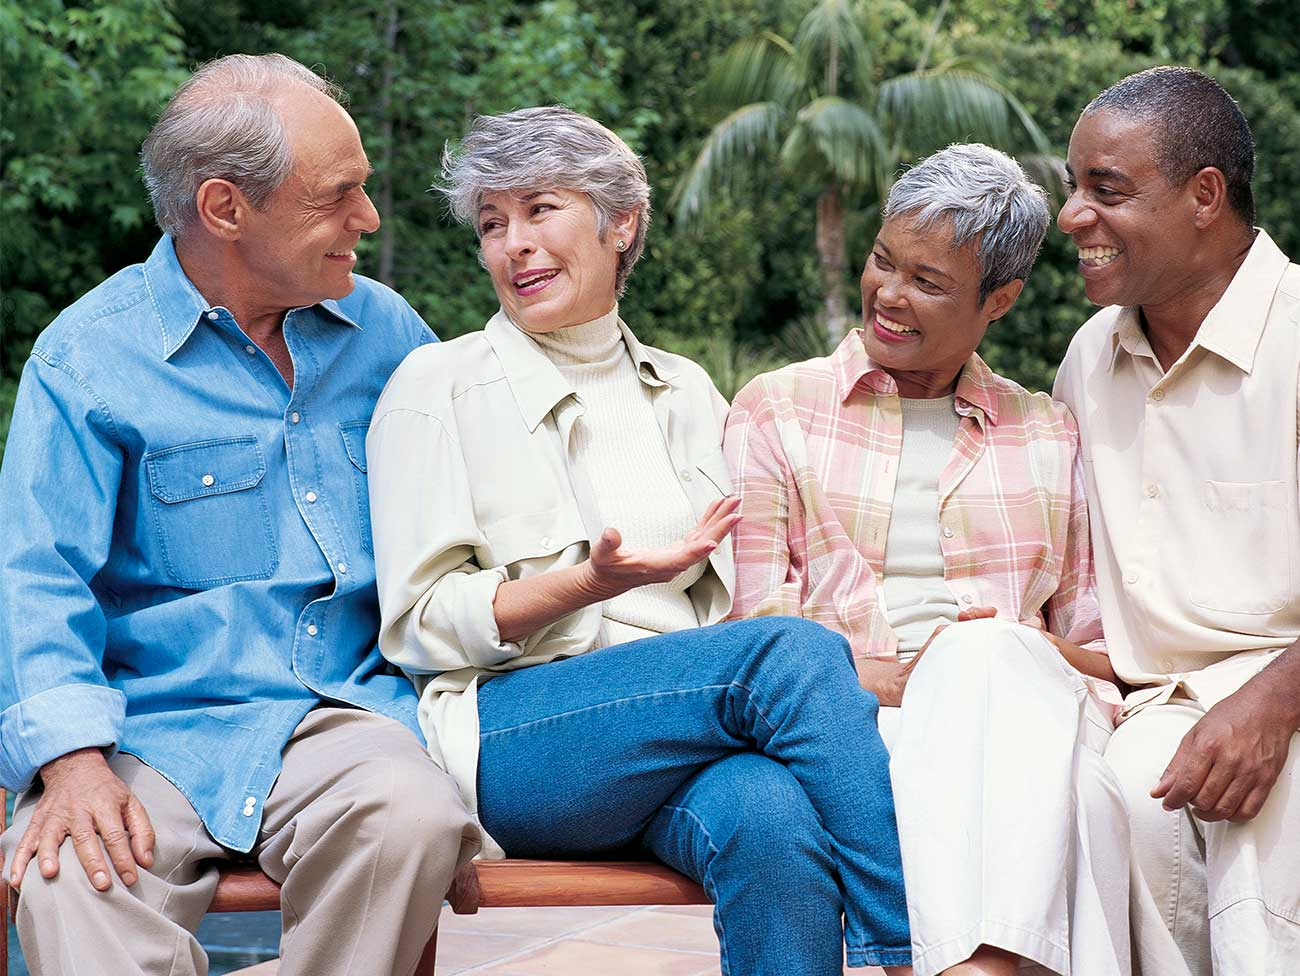 Group of diverse seniors sitting on a bench